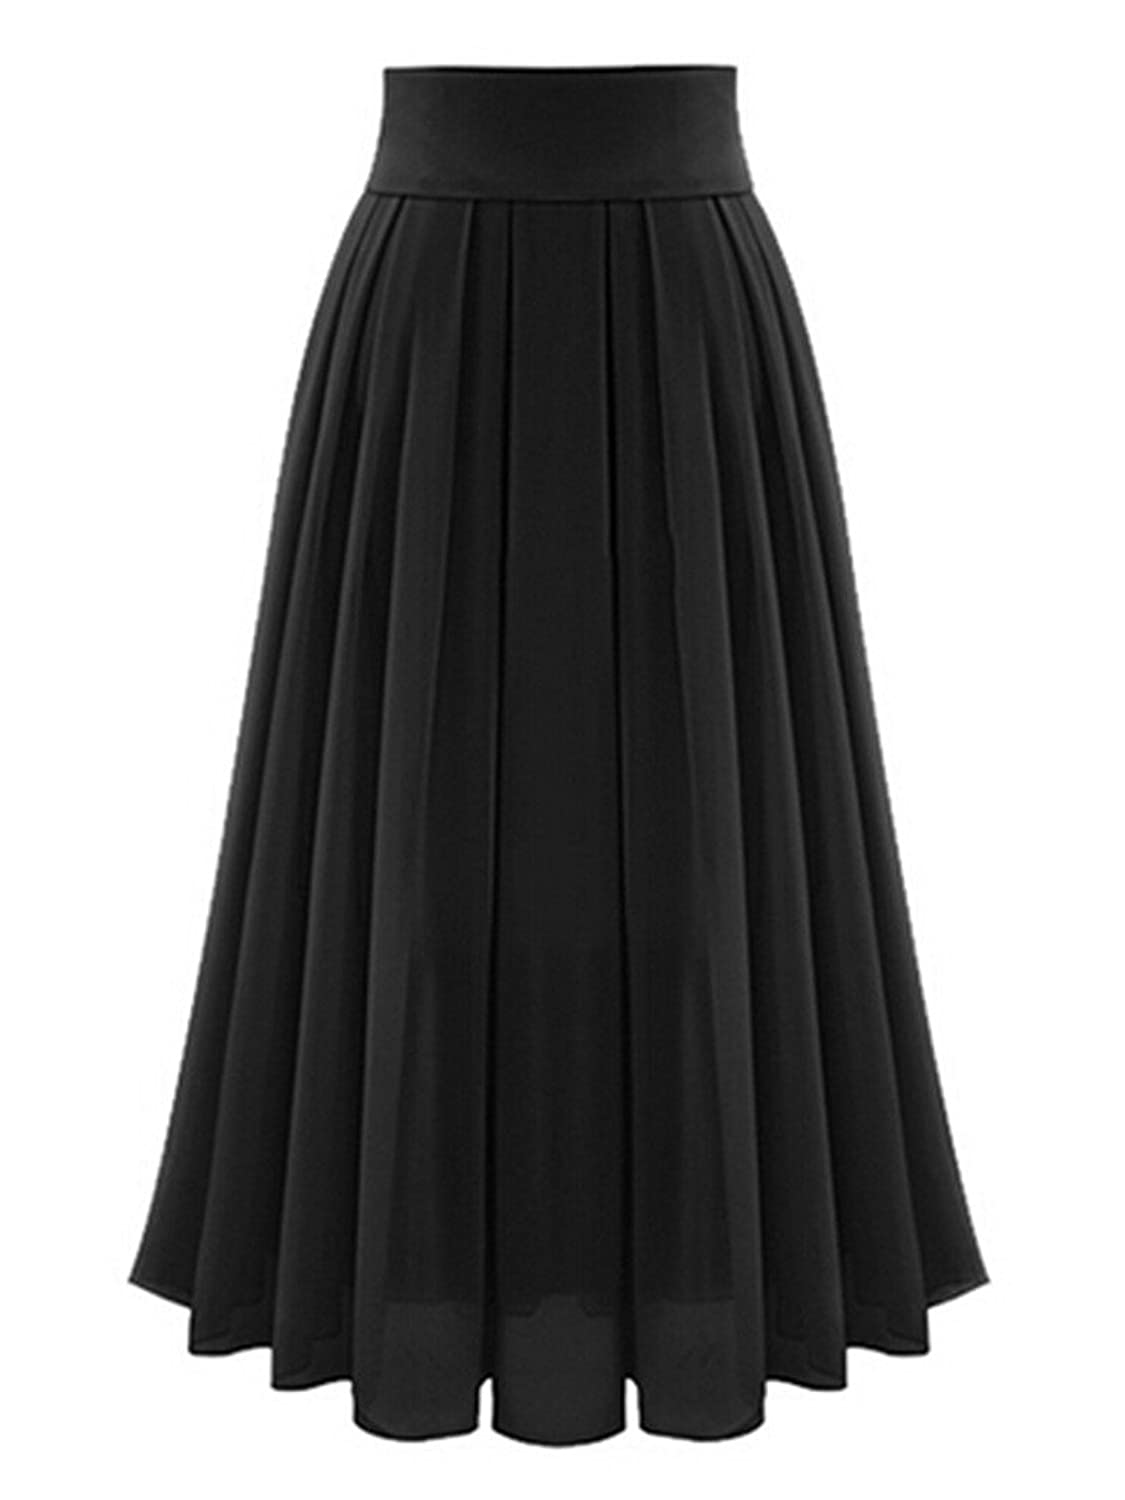 Victorian Skirts | Bustle, Walking, Edwardian Skirts High Waist Chiffon Mesh Tulle Layer Pleated Party Midi Skirt $19.99 AT vintagedancer.com